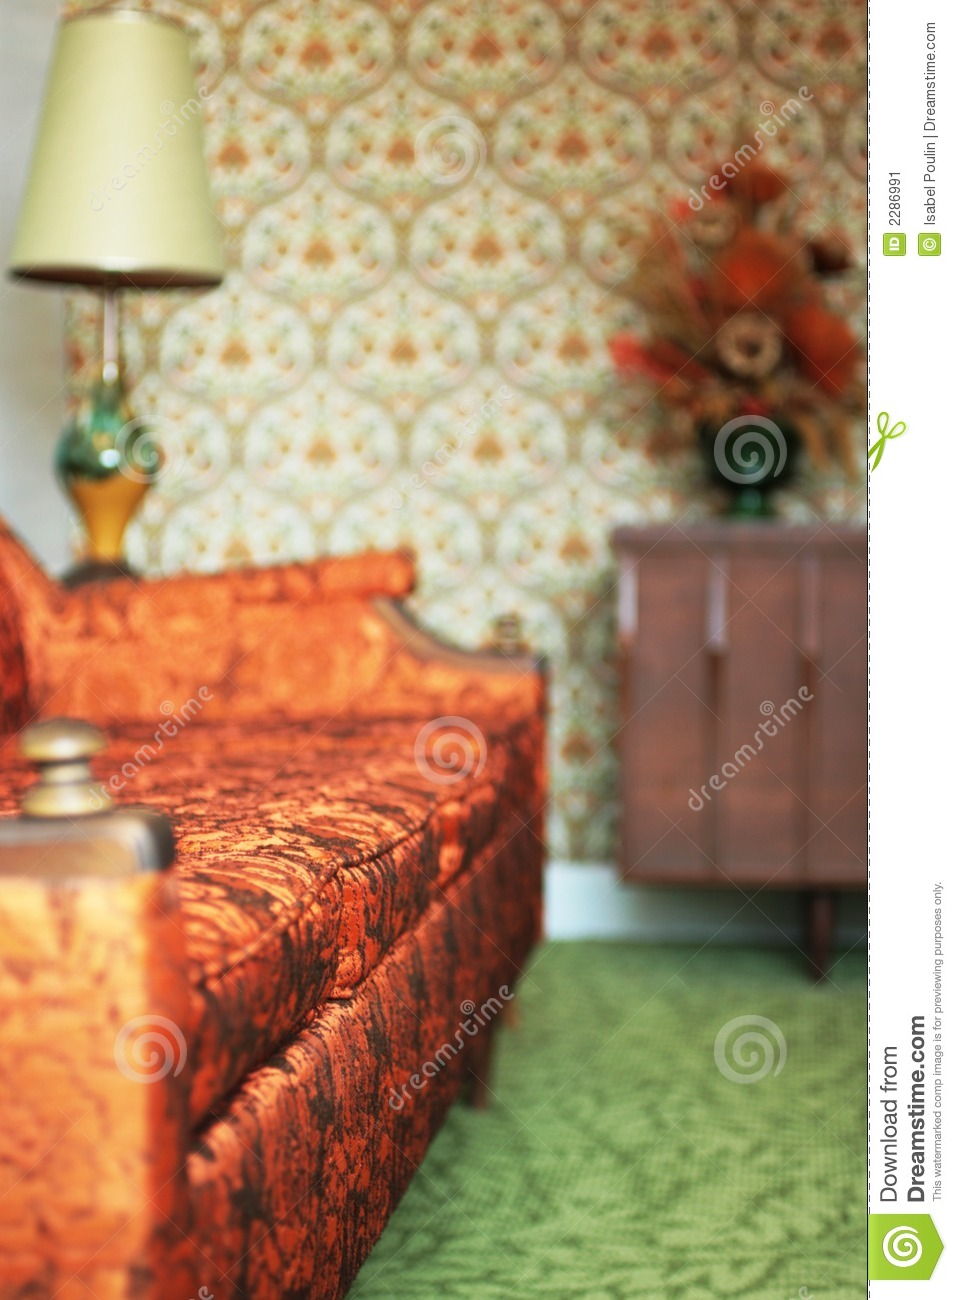 Nice Download Kitsch Living Room Stock Image. Image Of Kitsch, Furniture    2286991